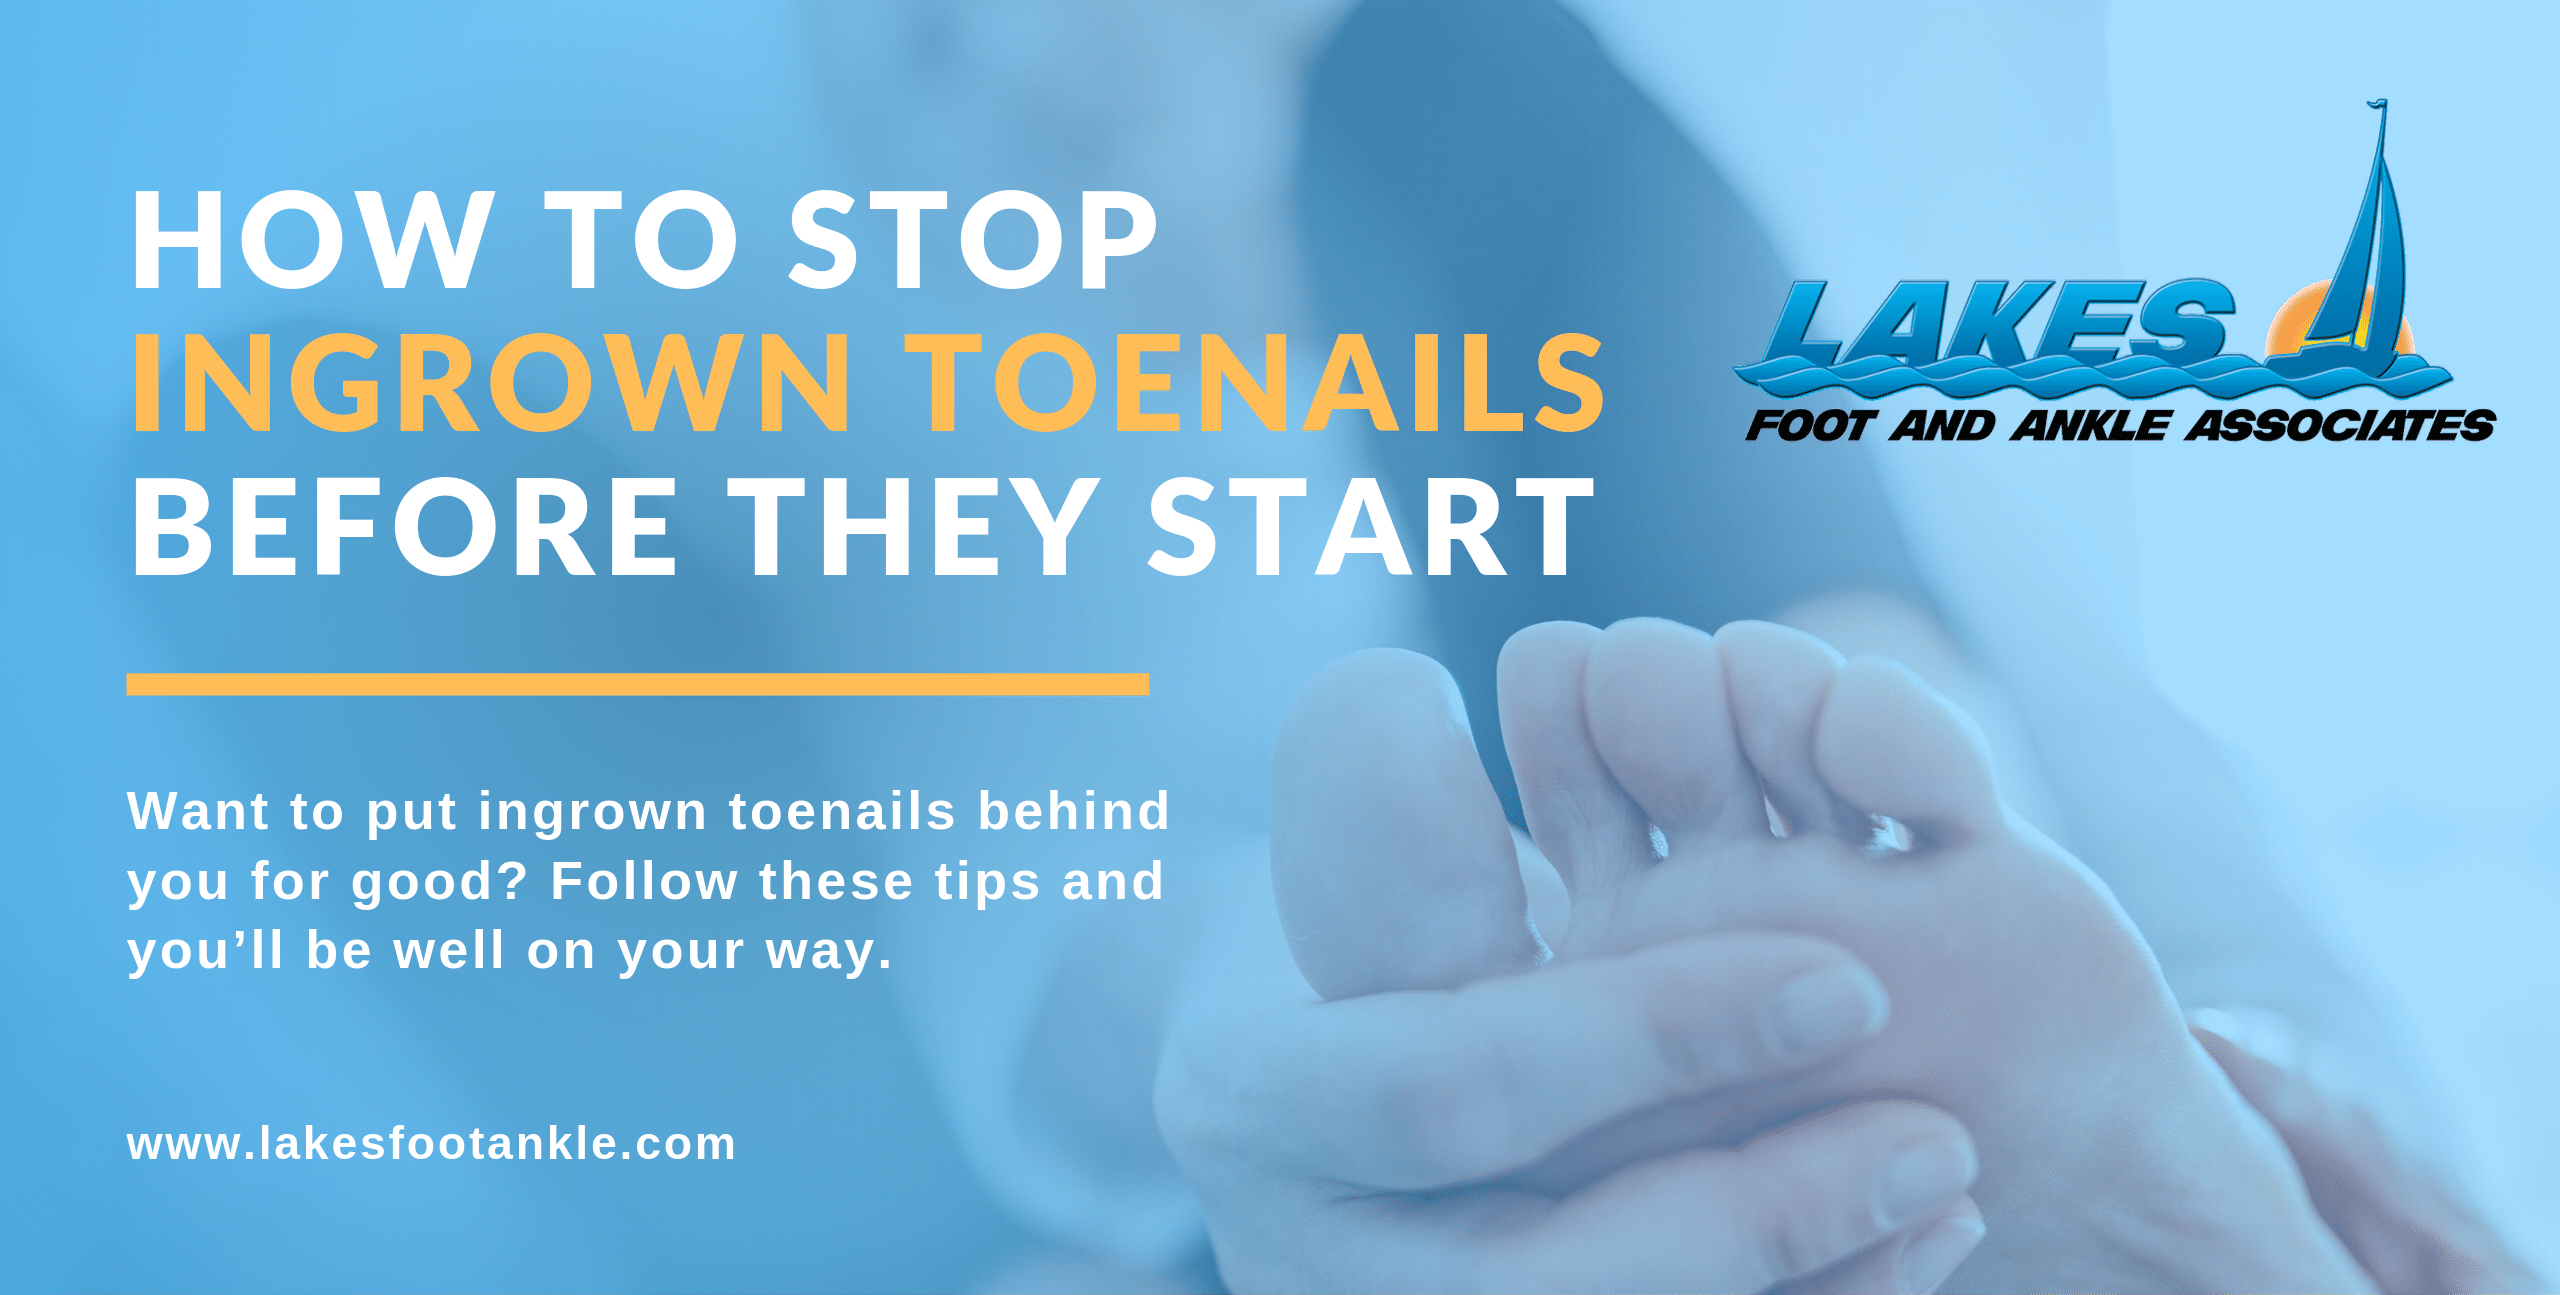 Prevent Ingrown Toenails